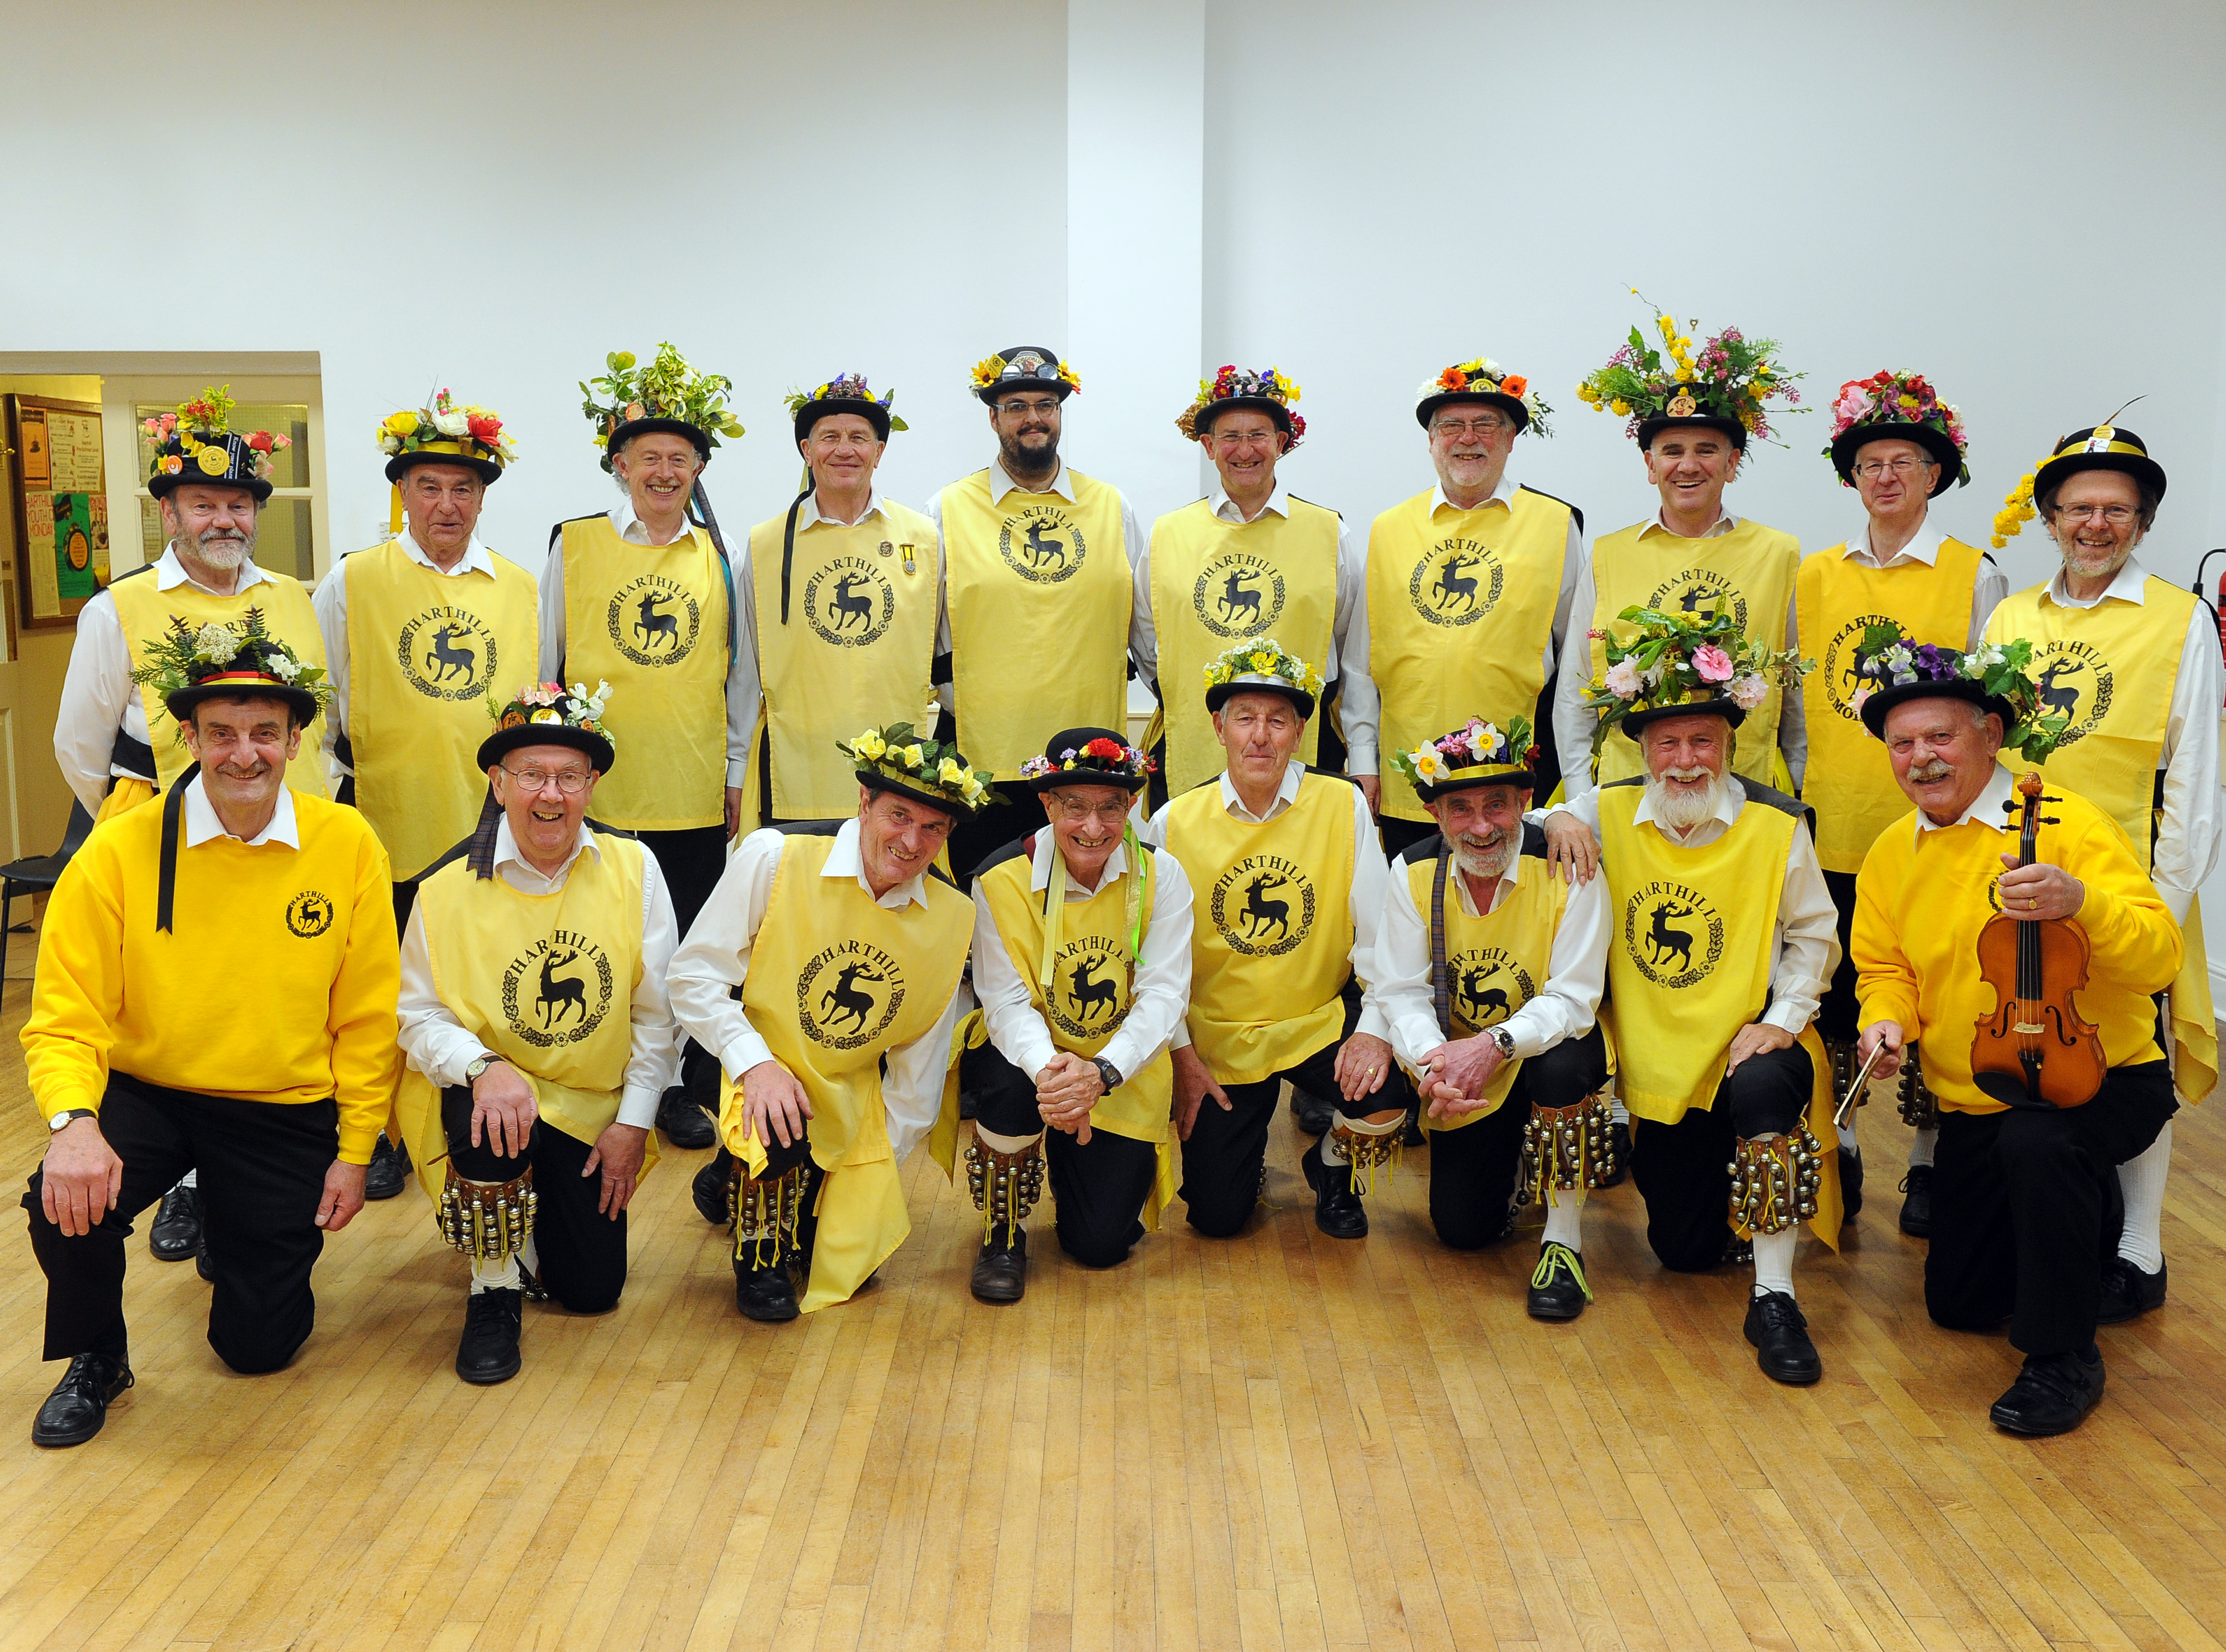 150631-01 Harthill Morris team get ready for new season